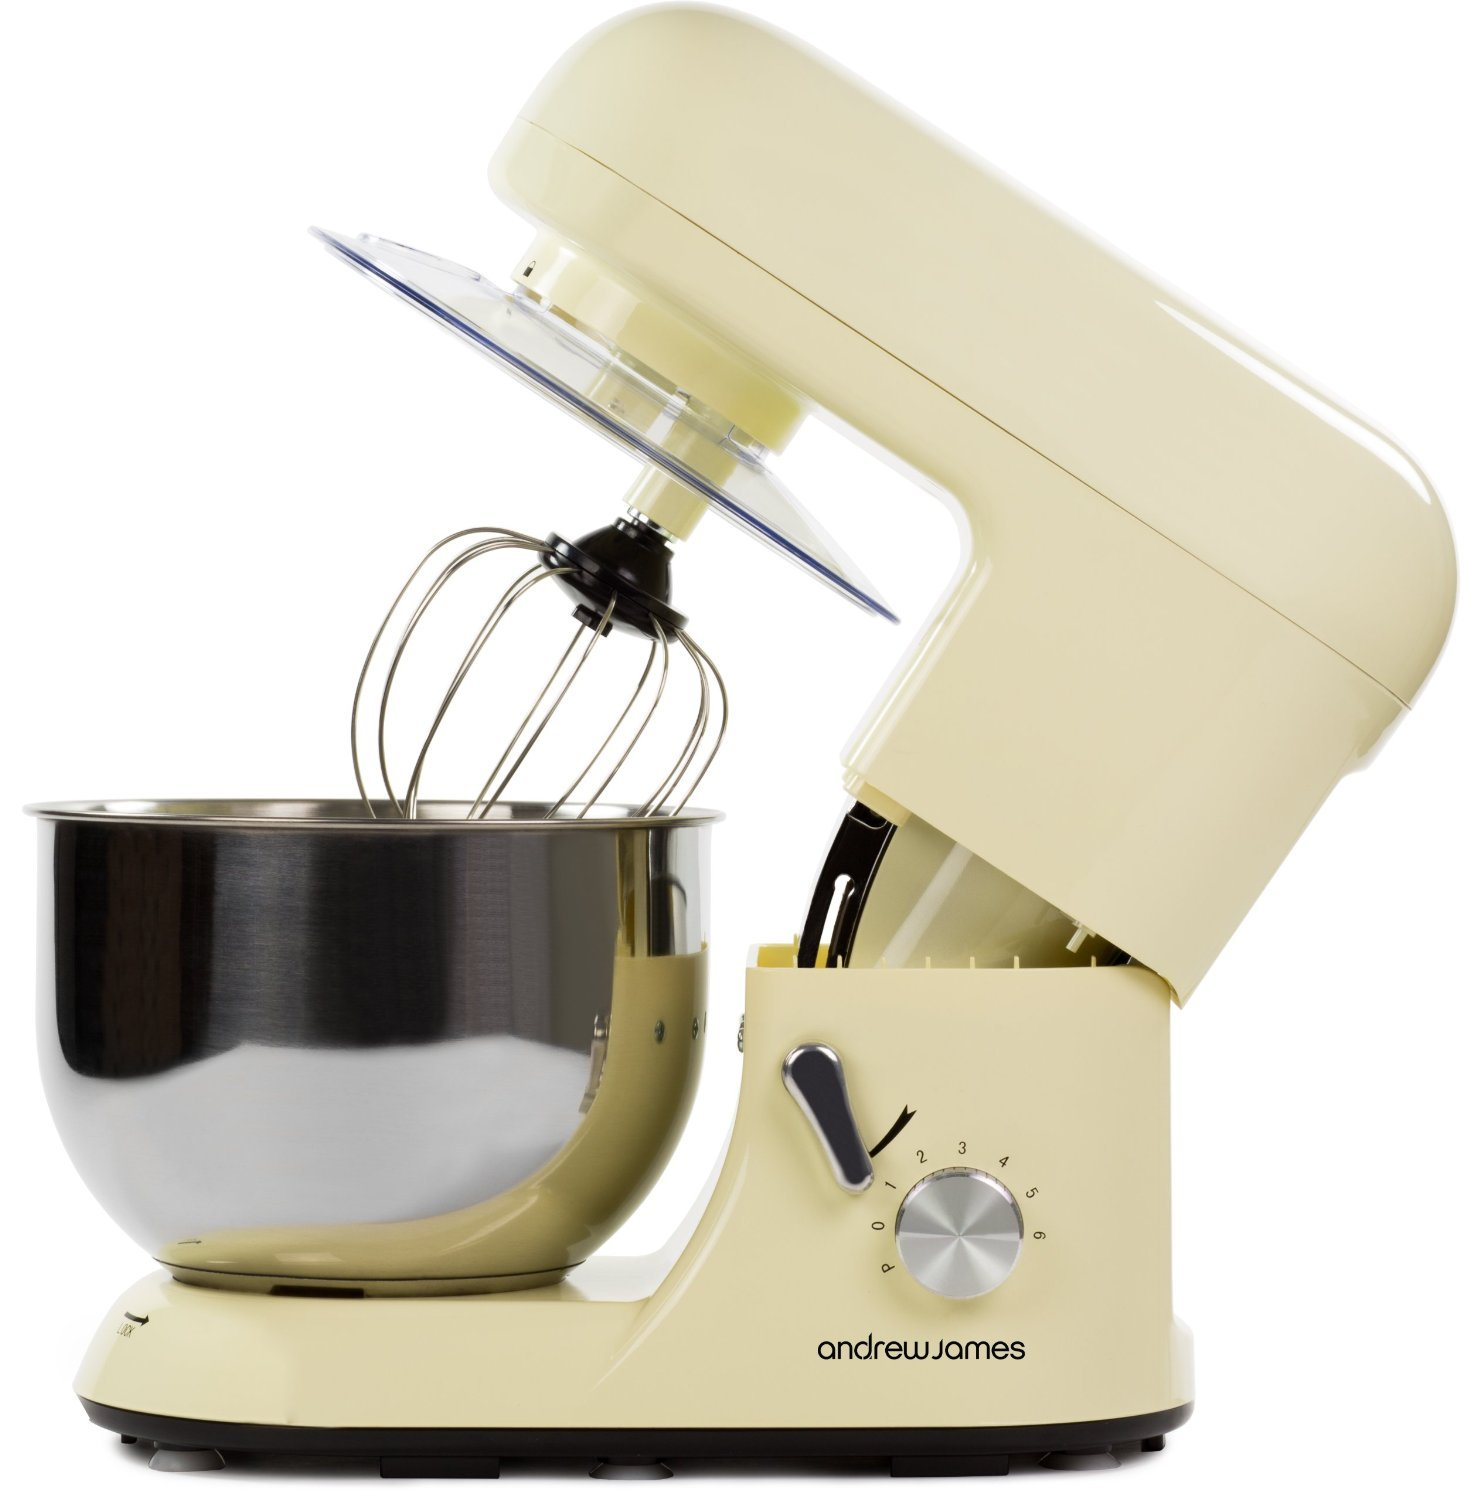 andrew james electric food stand mixer in classic cream splash